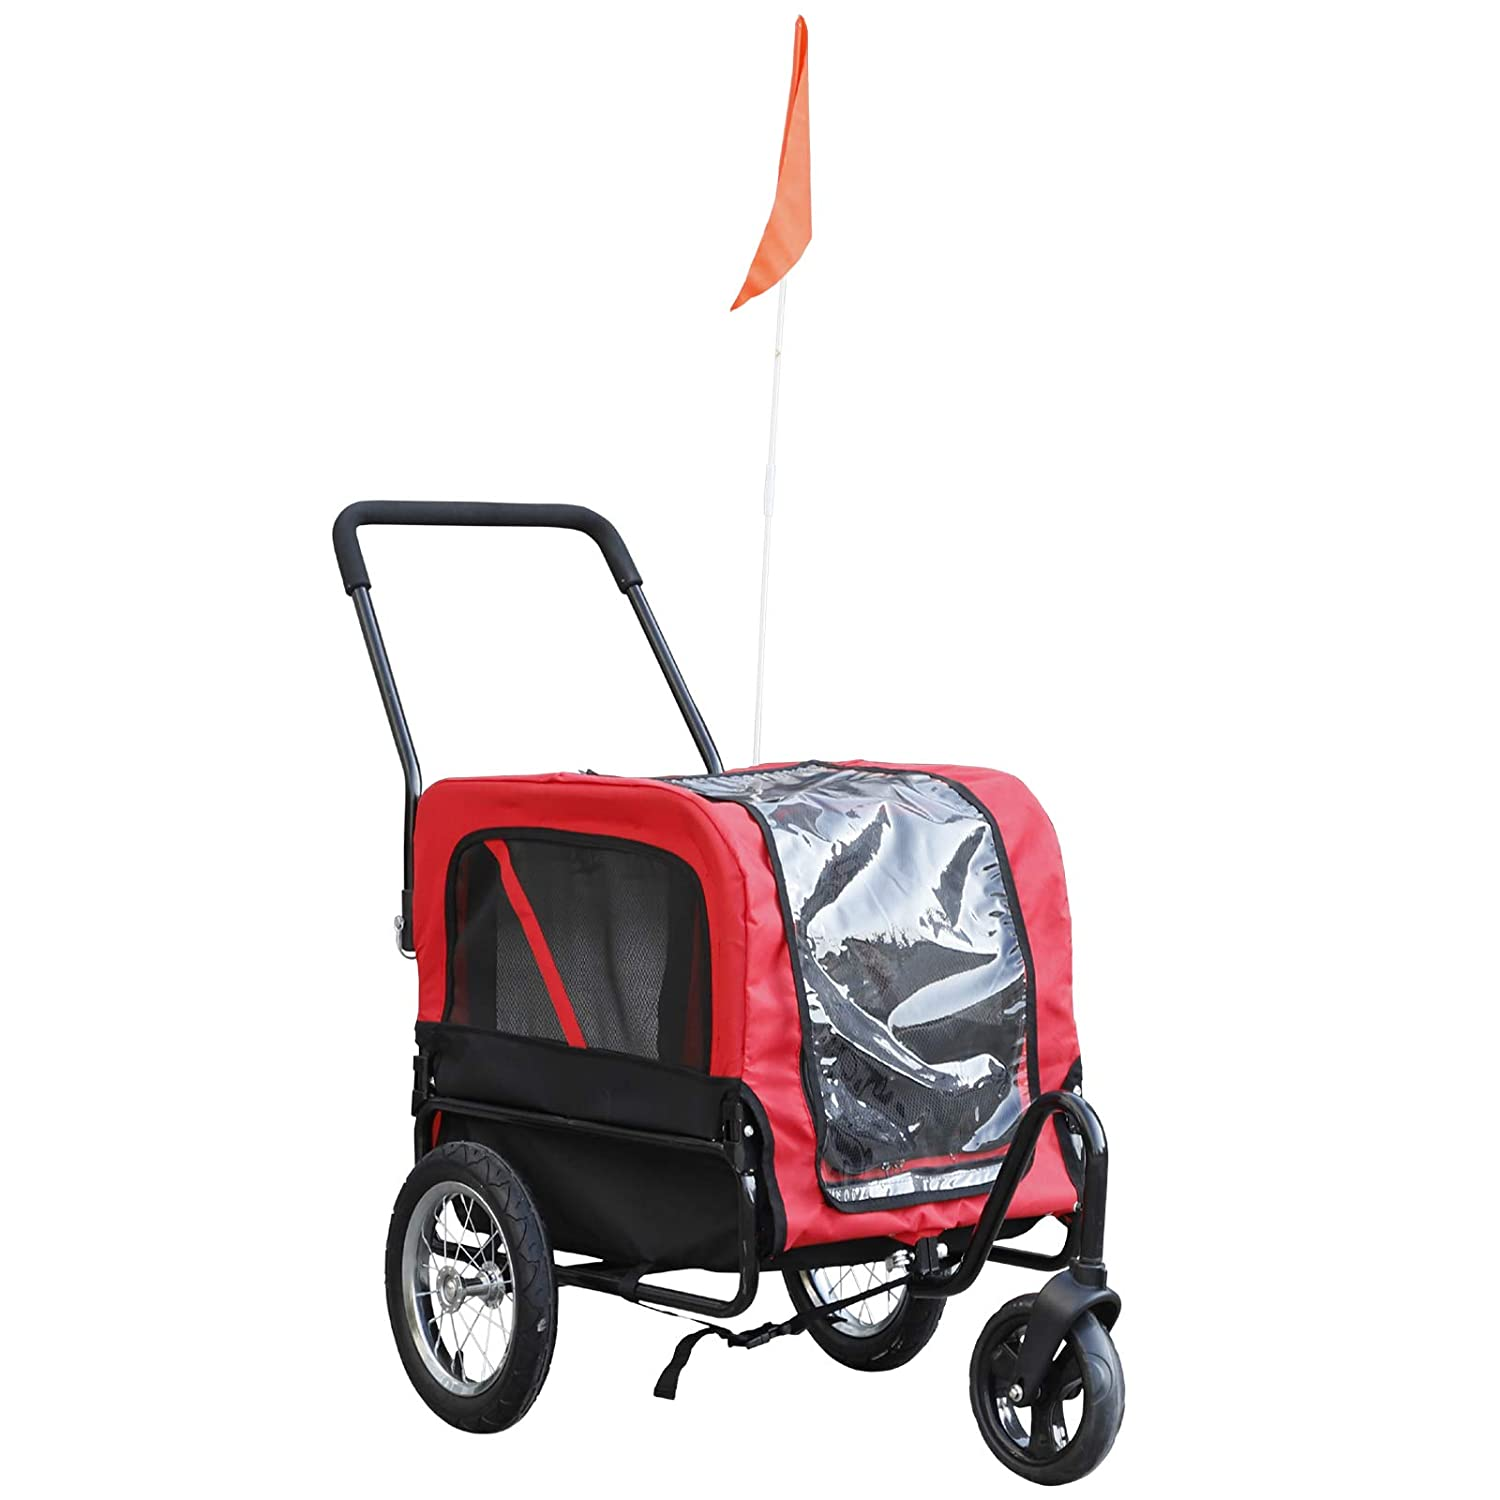 Aosom Elite-Jr 2-In-1 Dog Pet Bicycle Trailer Stroller With Swivel Wheel – Red Black